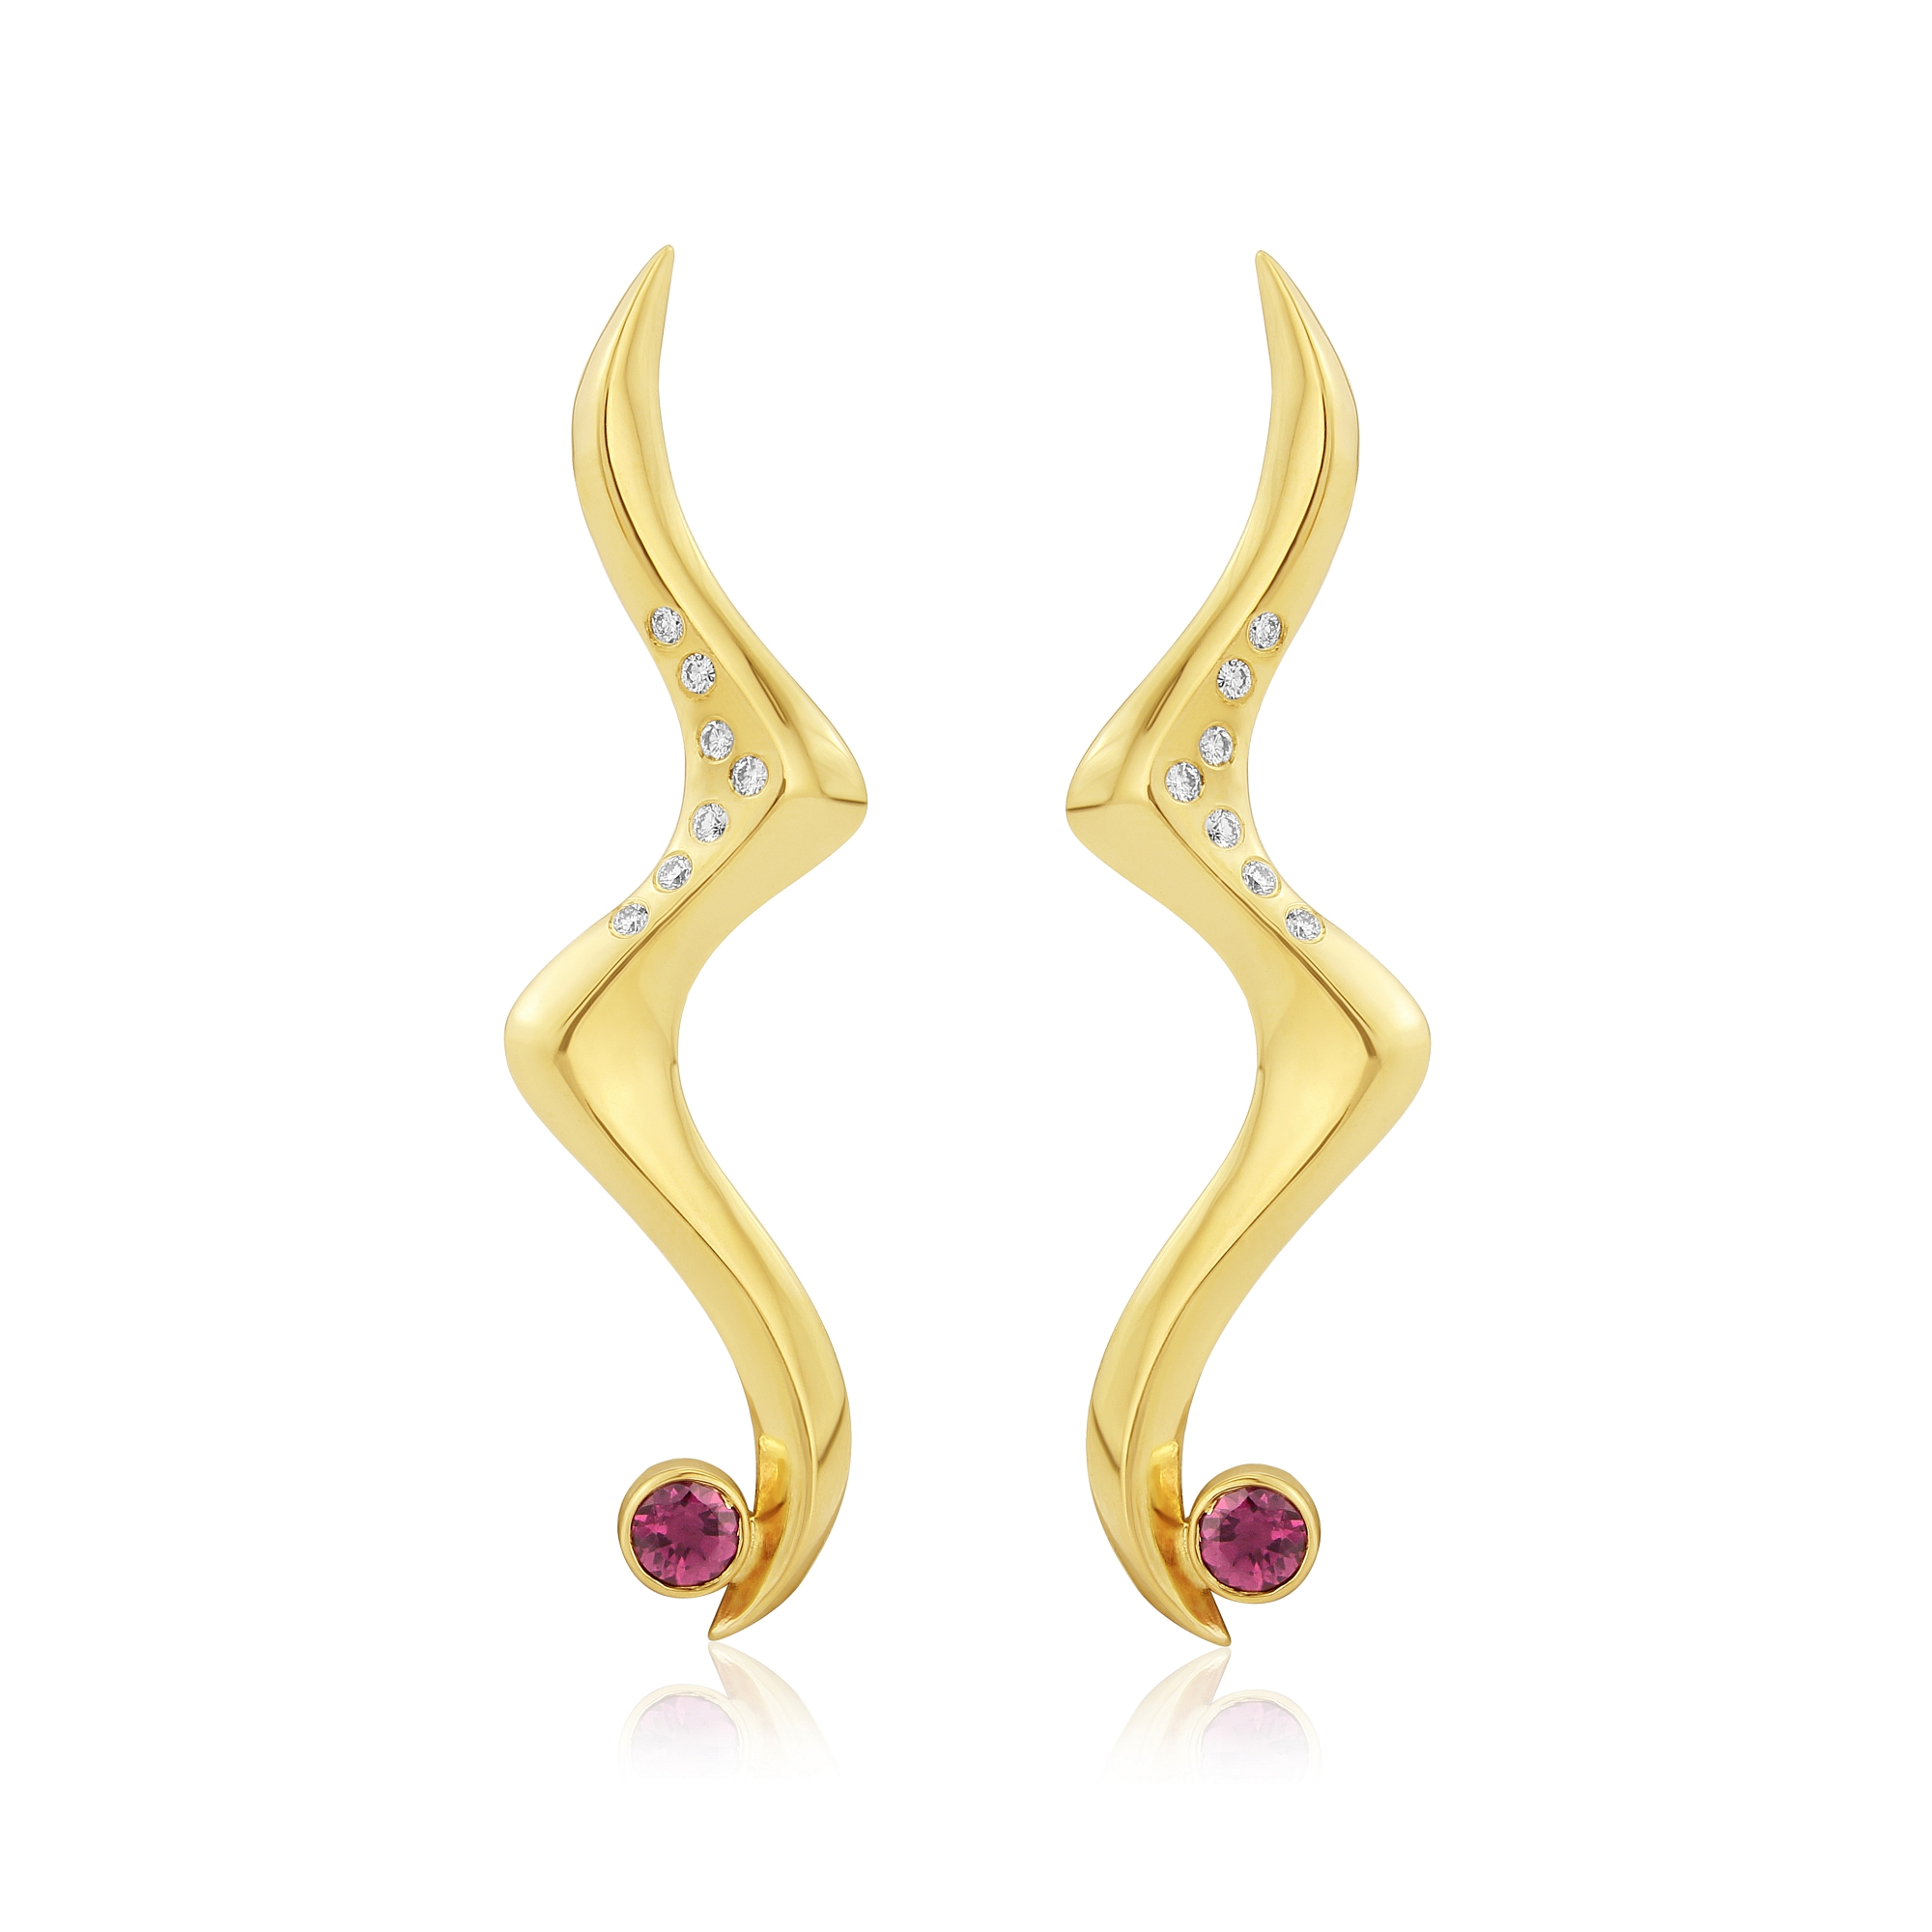 Long dress earrings originally carved in wax then cast in 9ct gold and set with Garnets and Diamonds